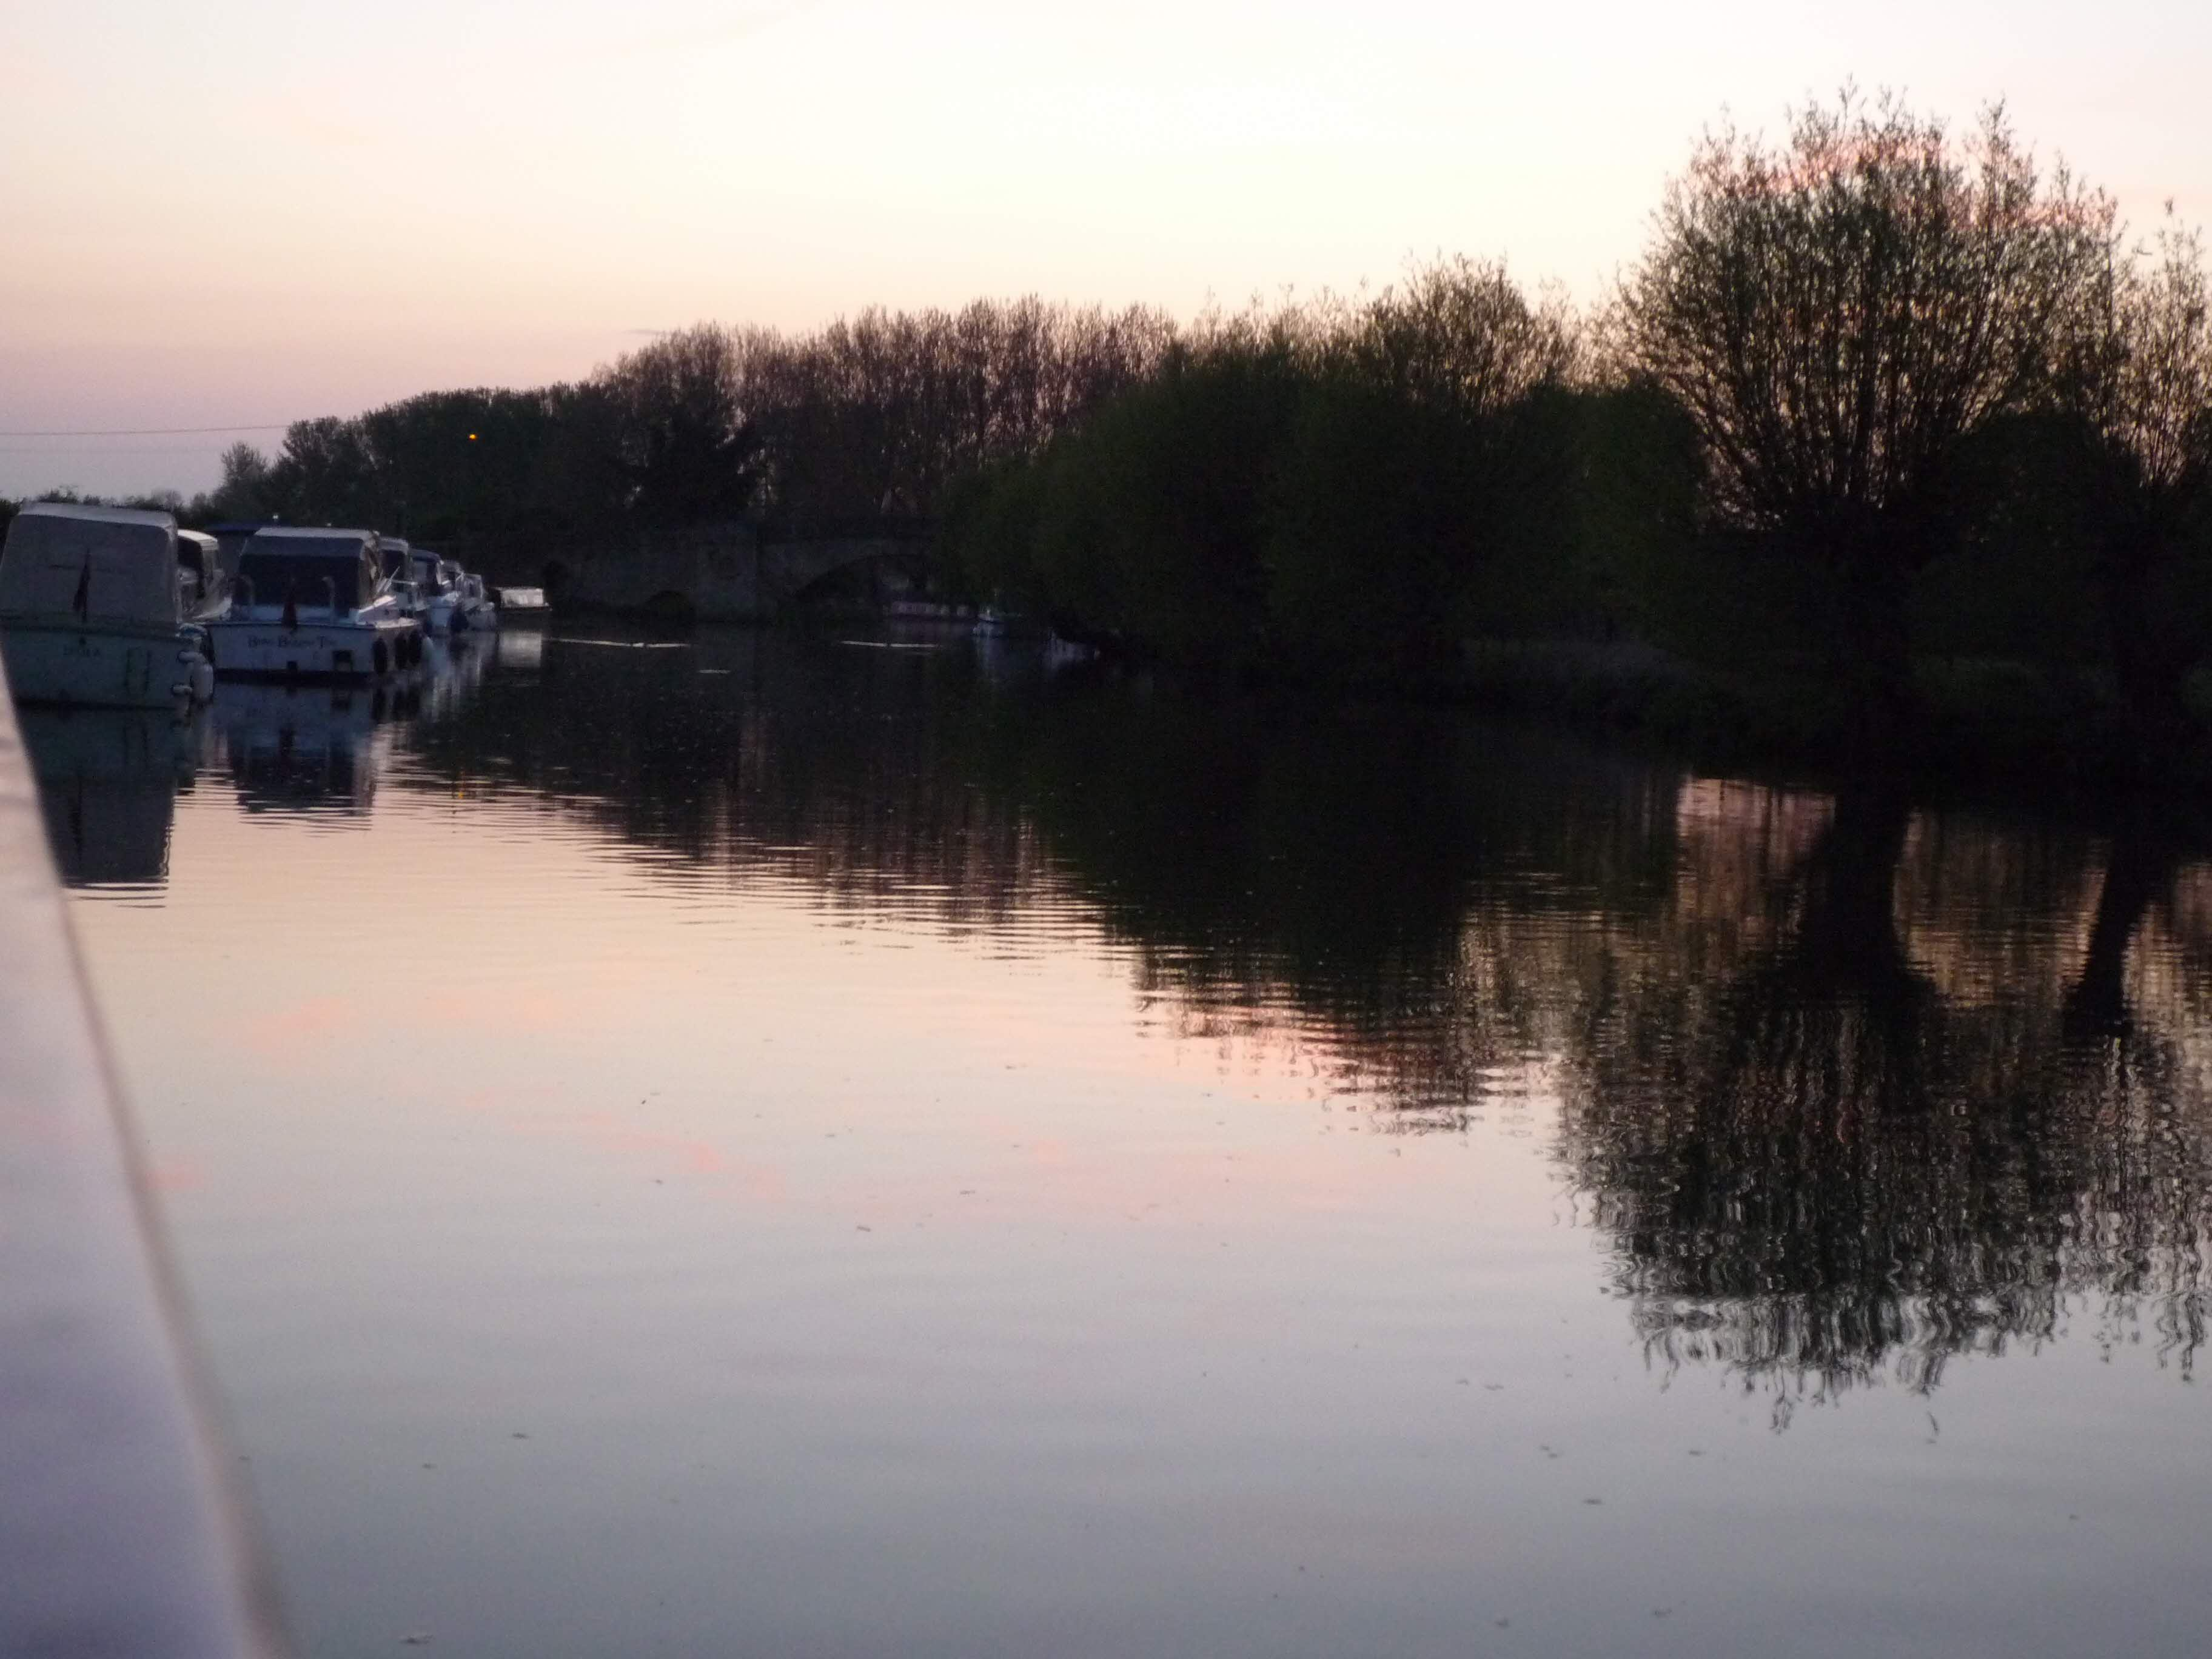 Twilight on the water at Lechlade